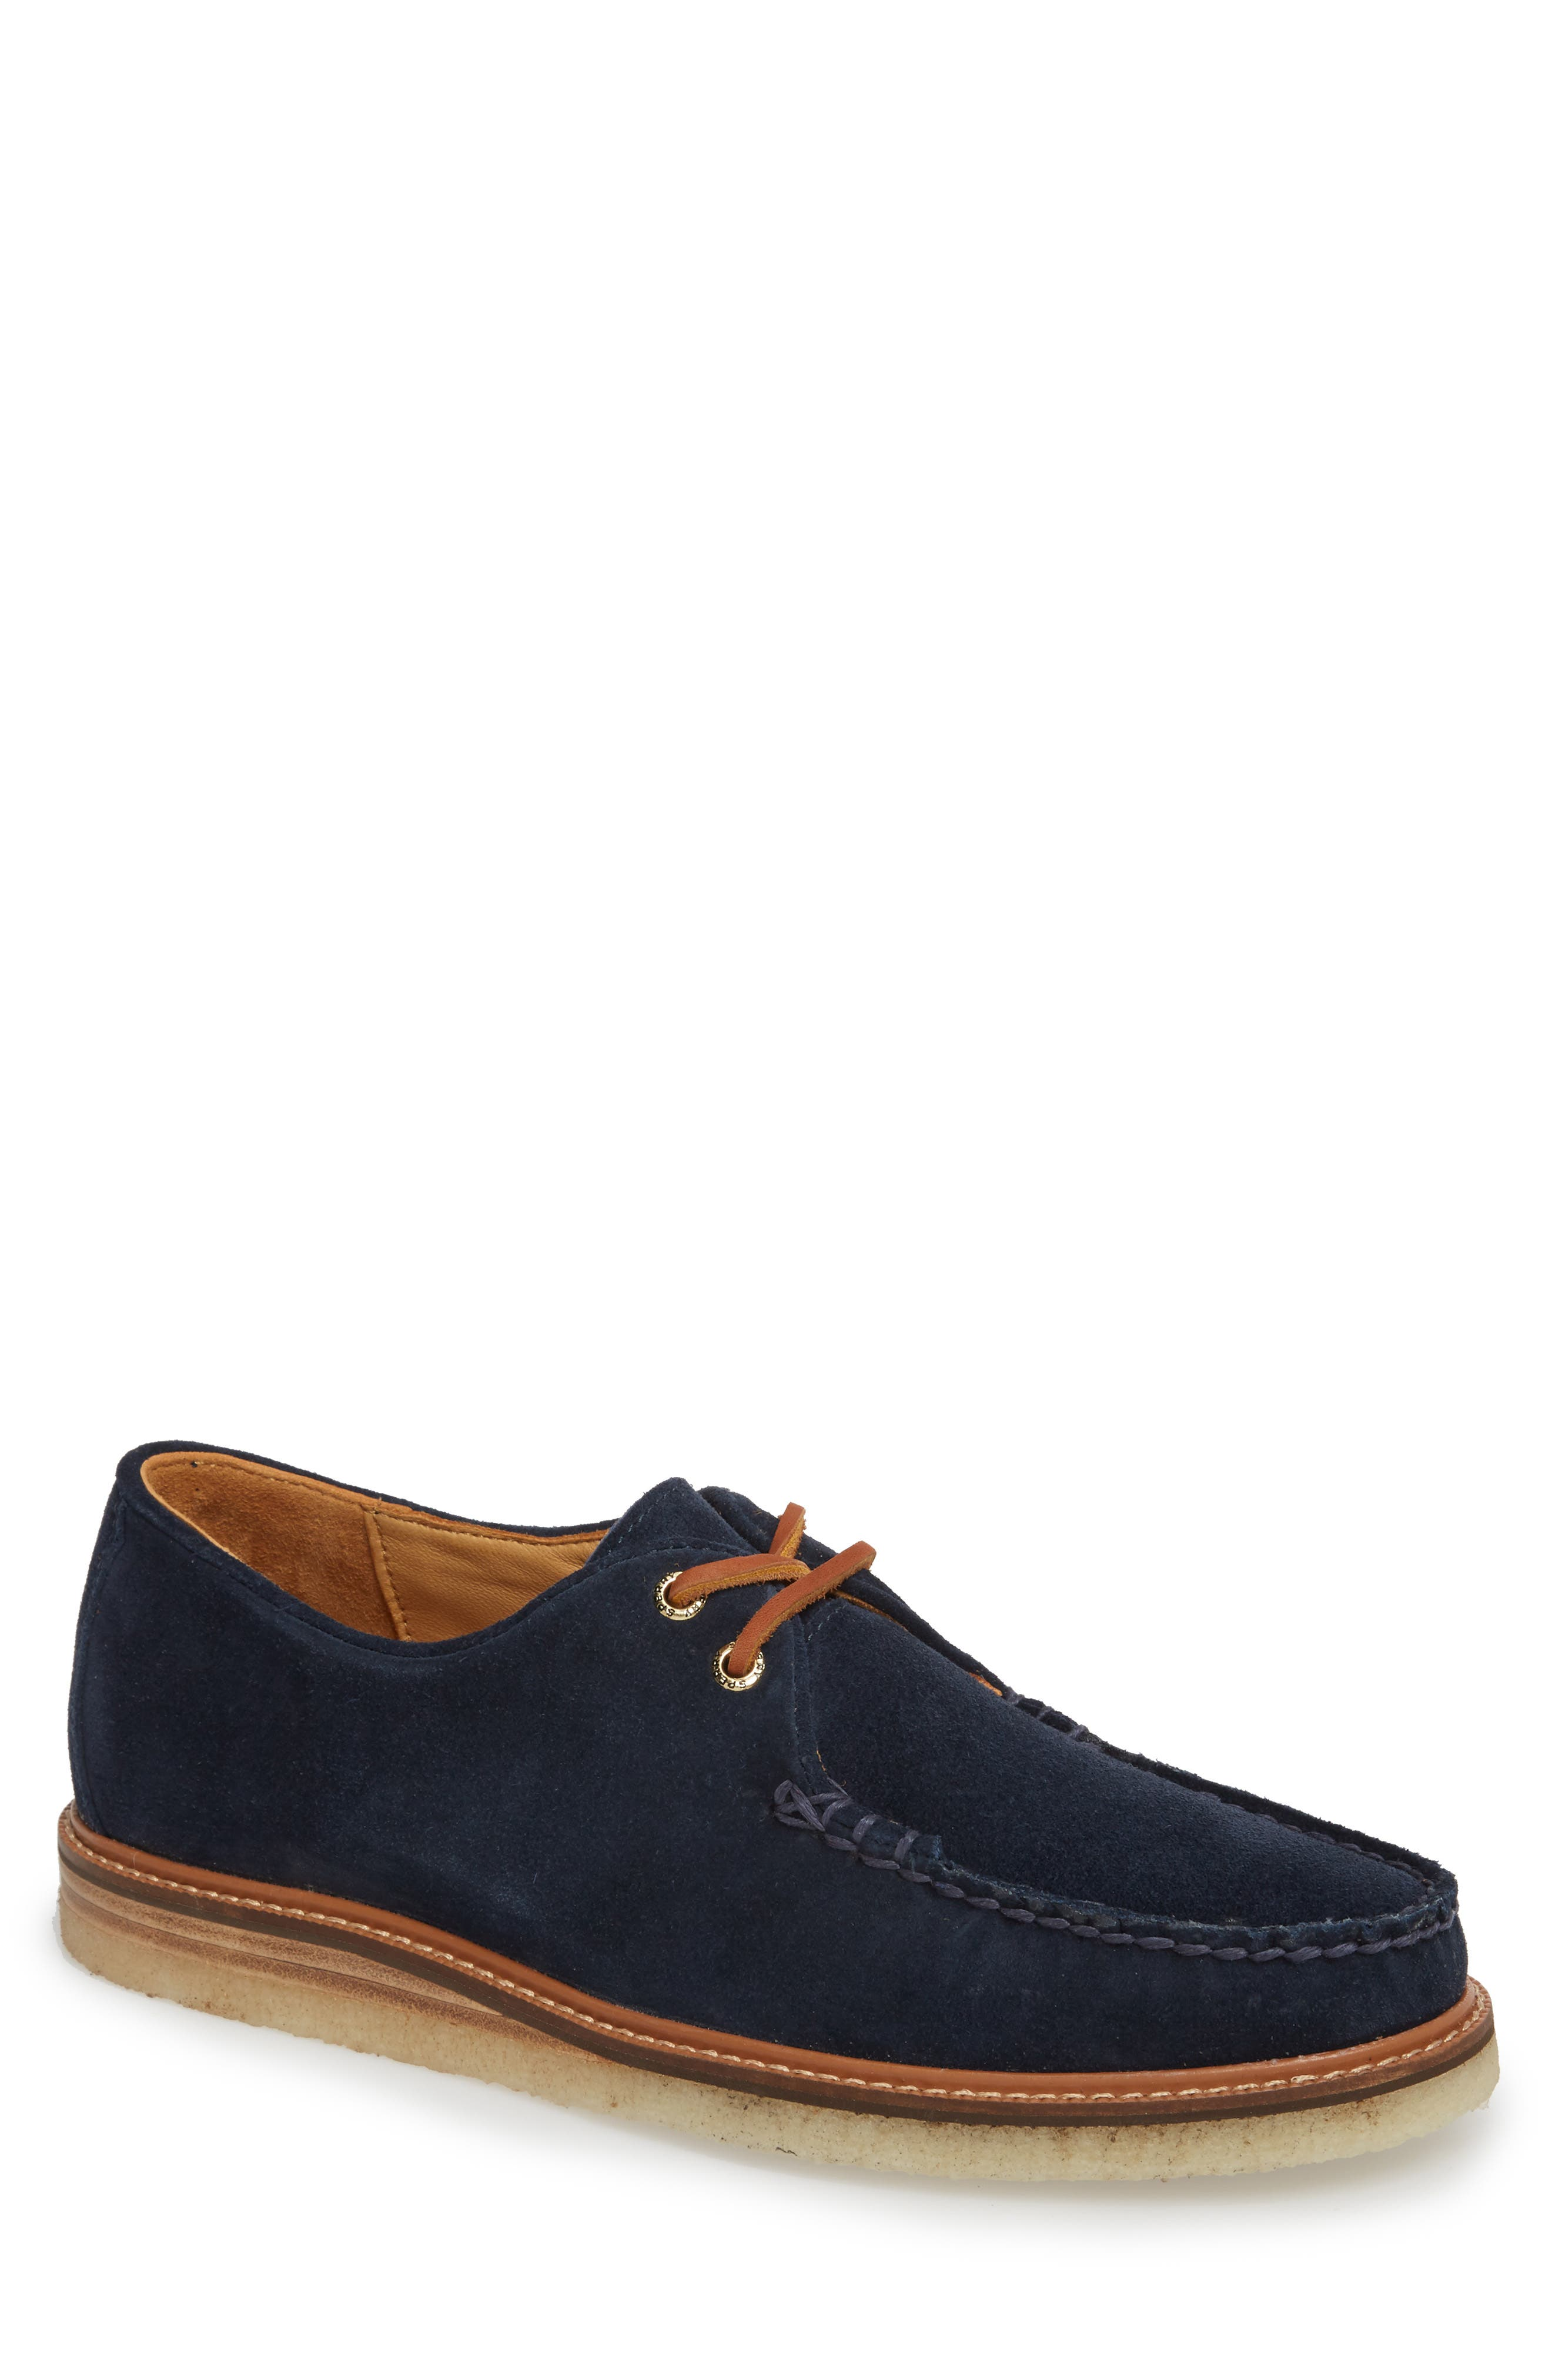 SPERRY, Gold Cup Captain's Crepe Sole Oxford, Main thumbnail 1, color, BLUE LEATHER/ SUEDE